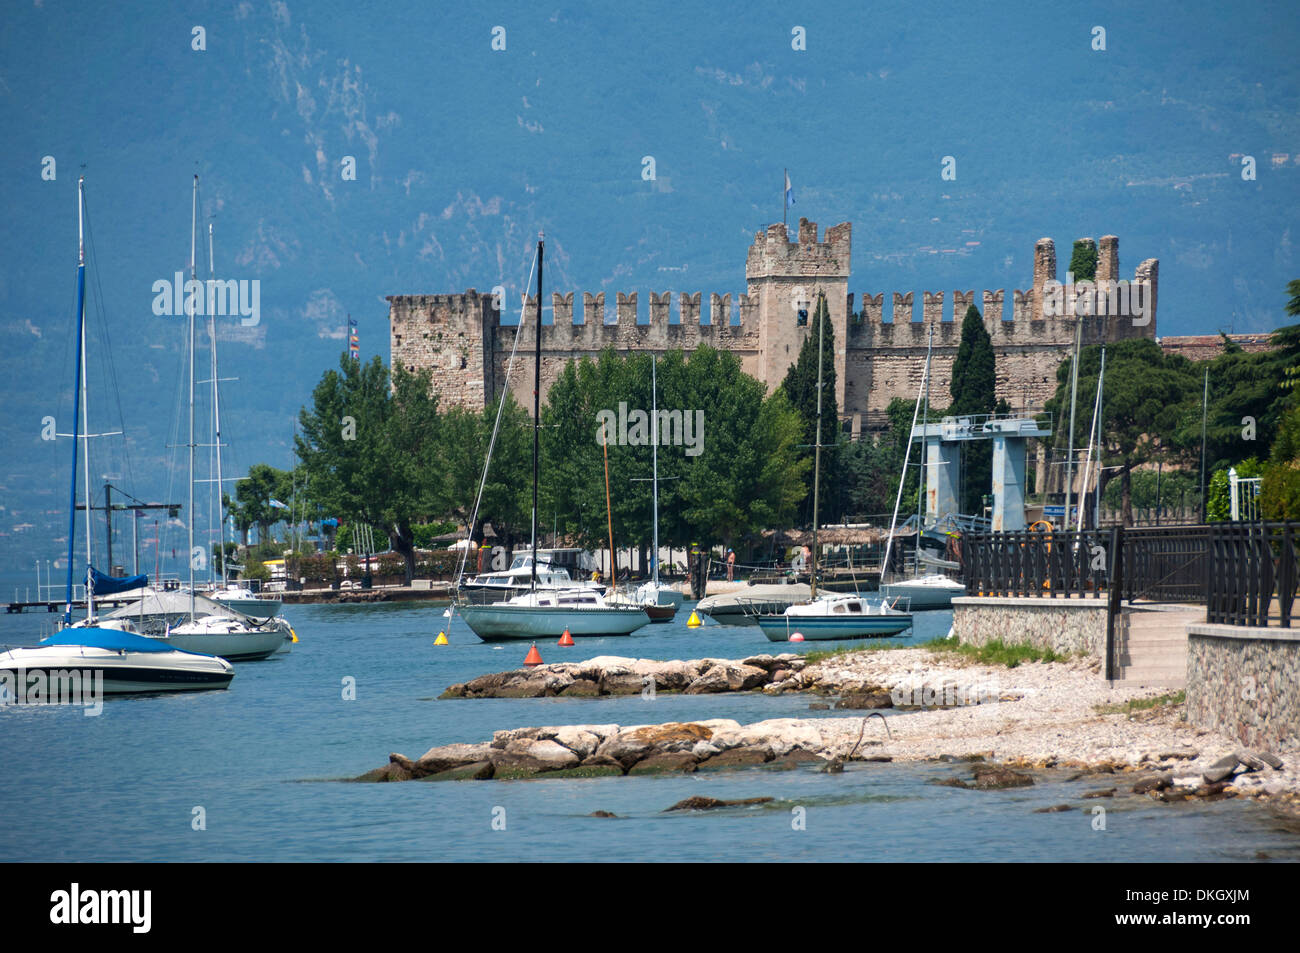 The Castle at Torre del Benaco, Lake Garda, Italian Lakes, Veneto, Italy, Europe - Stock Image